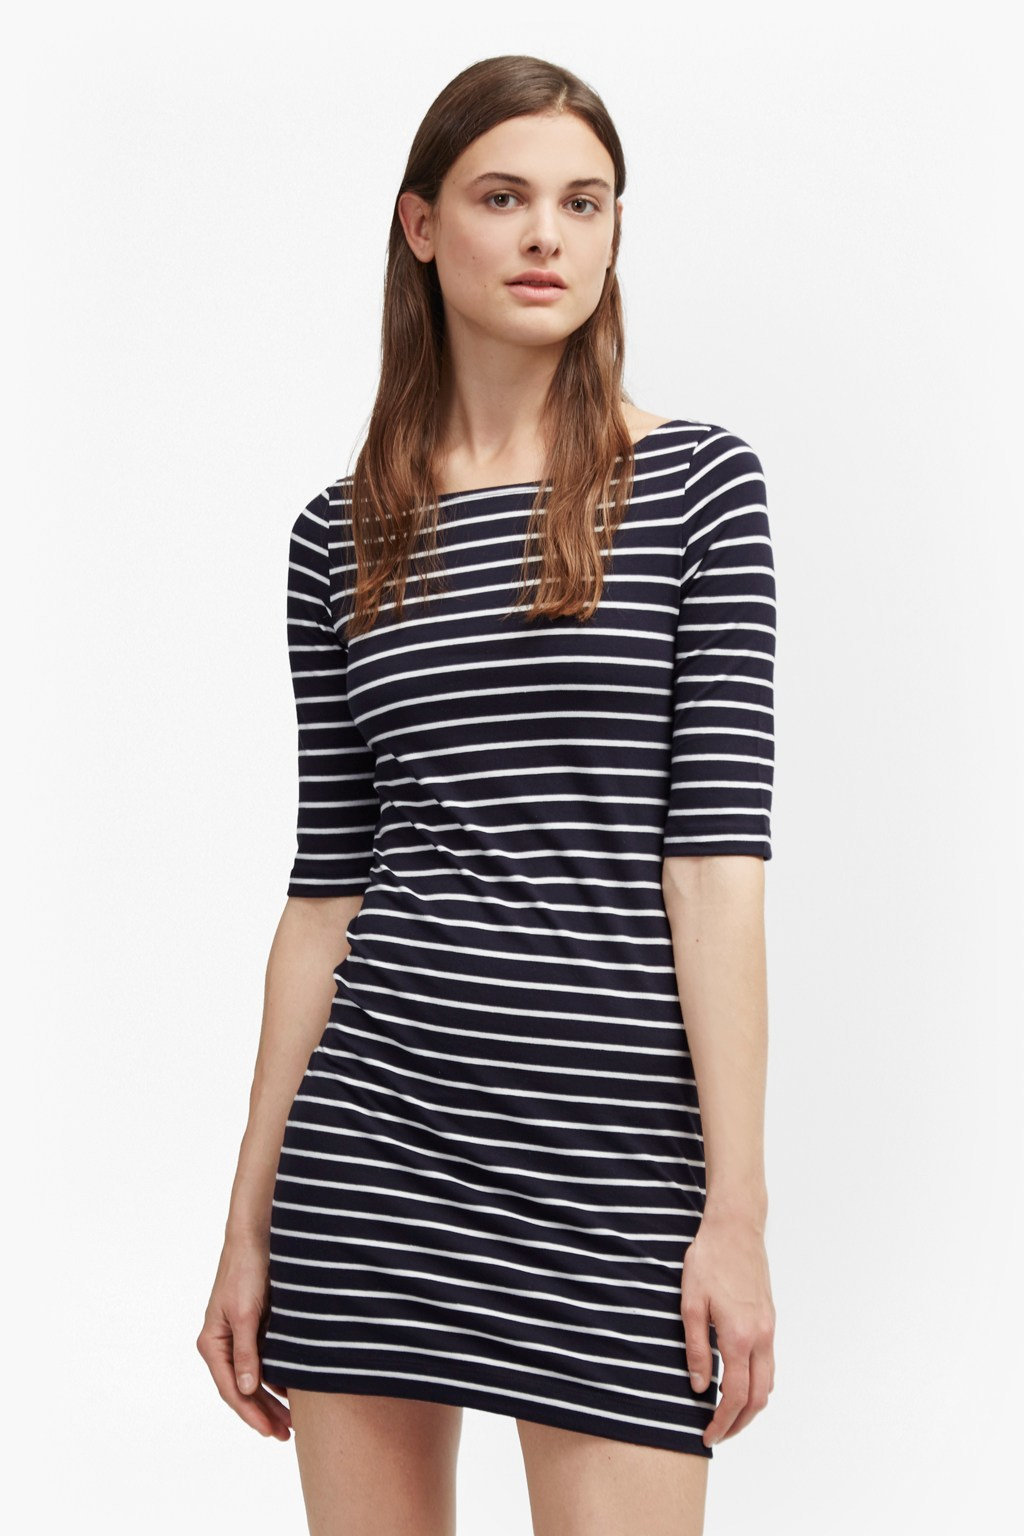 Tim Tim Boat Neck Stripe Dress Utility Blue/White - style: t-shirt; length: mid thigh; pattern: horizontal stripes; secondary colour: white; predominant colour: navy; occasions: casual; fit: body skimming; fibres: cotton - 100%; neckline: crew; sleeve length: half sleeve; sleeve style: standard; pattern type: fabric; texture group: jersey - stretchy/drapey; multicoloured: multicoloured; wardrobe: basic; season: a/w 2016